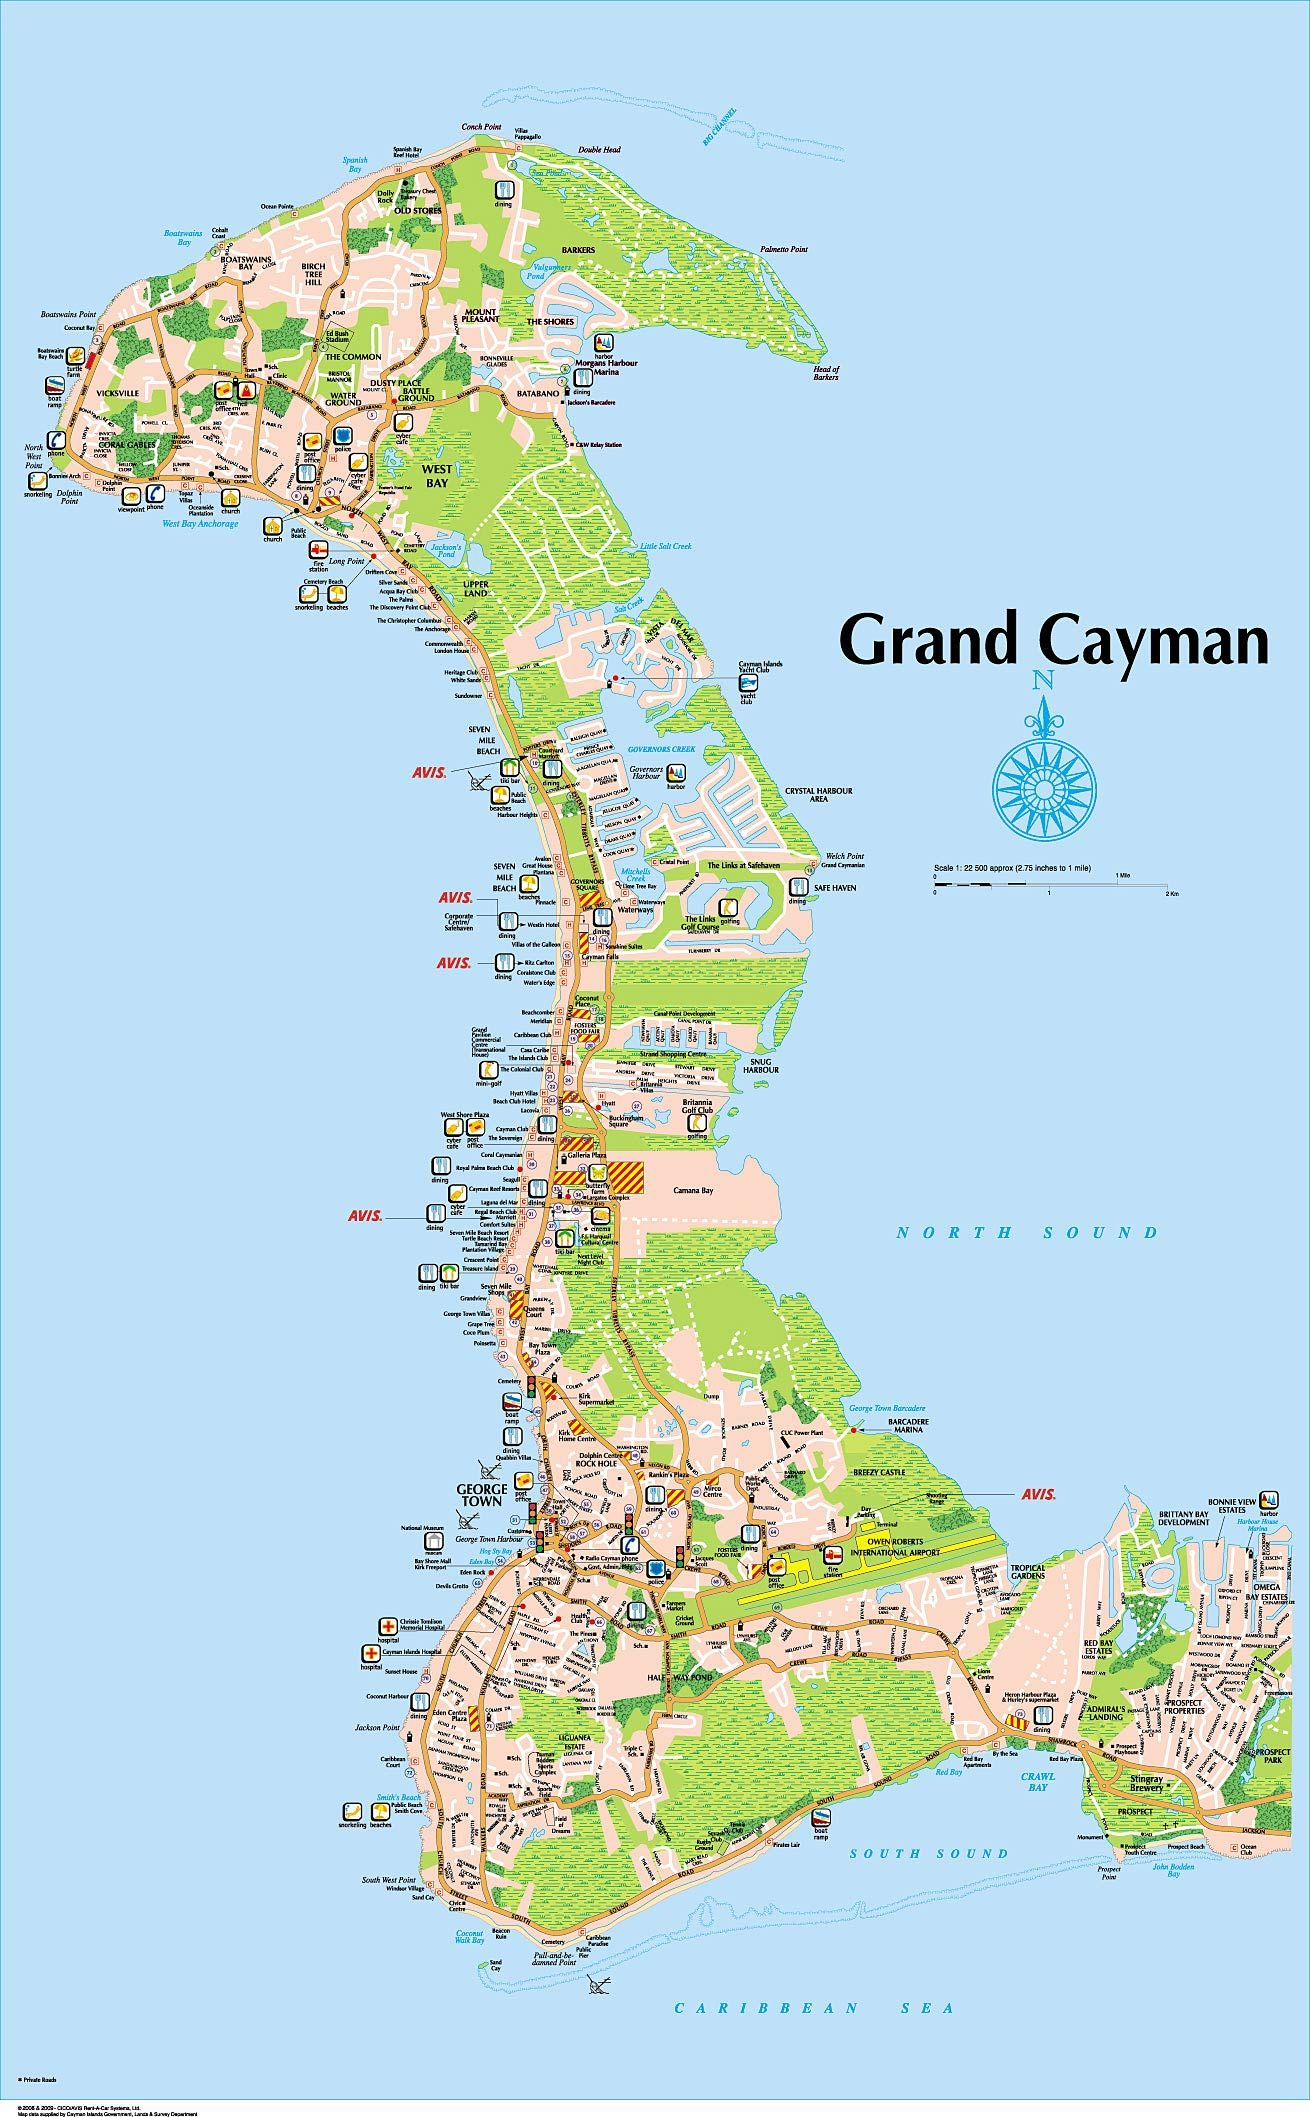 Grand Cayman Map 7 Mile Beach   Full Size Map   Grand Cayman Island Map. Book four  Grand Cayman Map